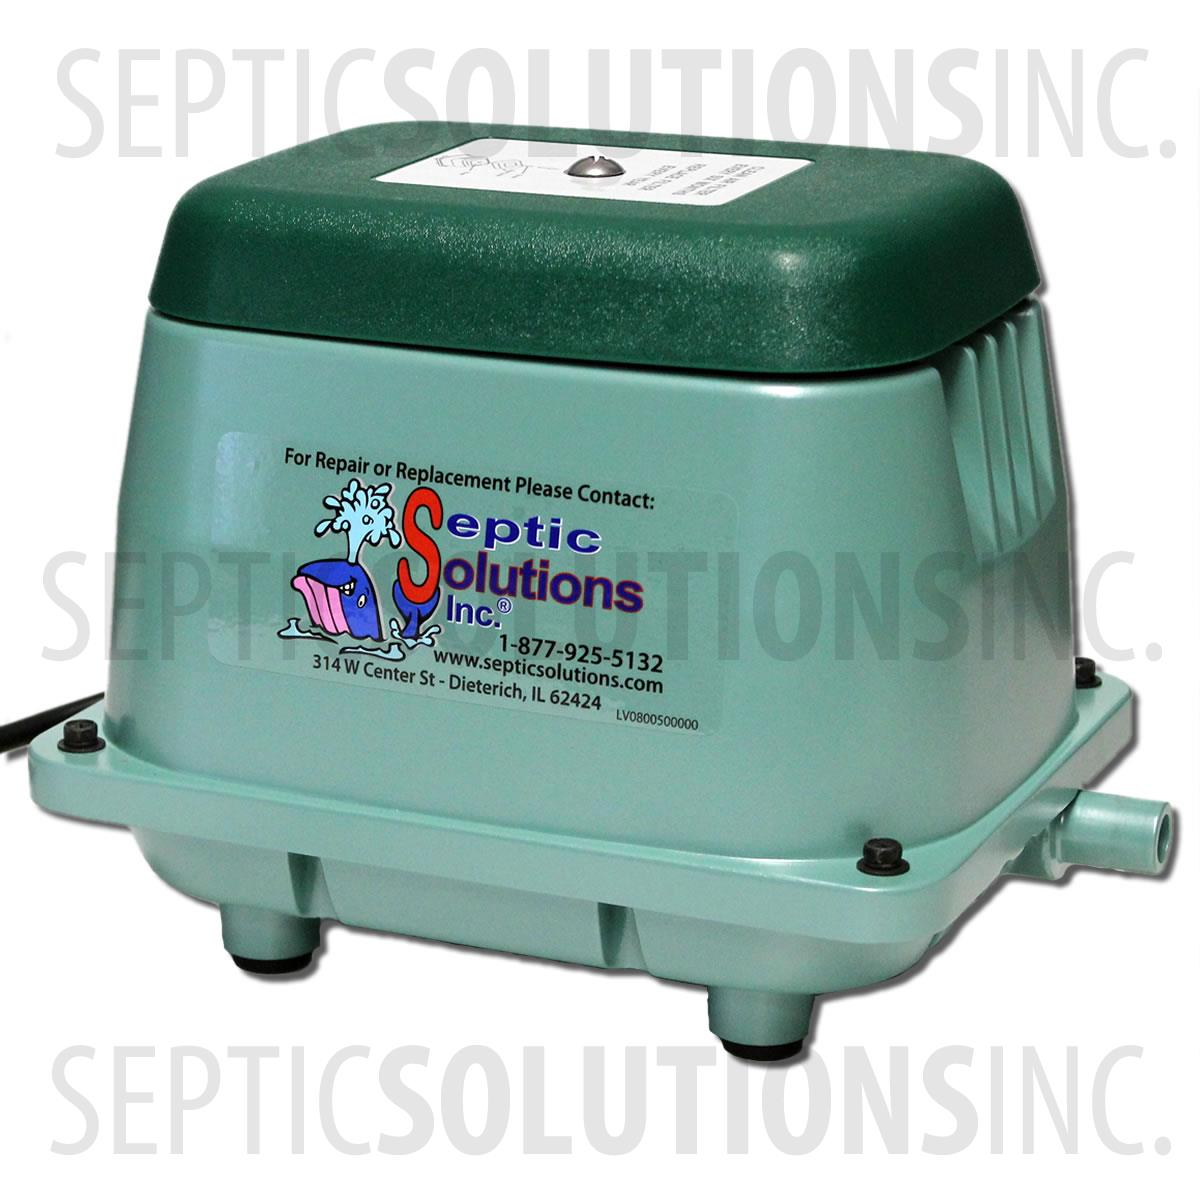 CS500_1?w=600 clearstream aerobic septic system air pumps and repair parts  at gsmportal.co